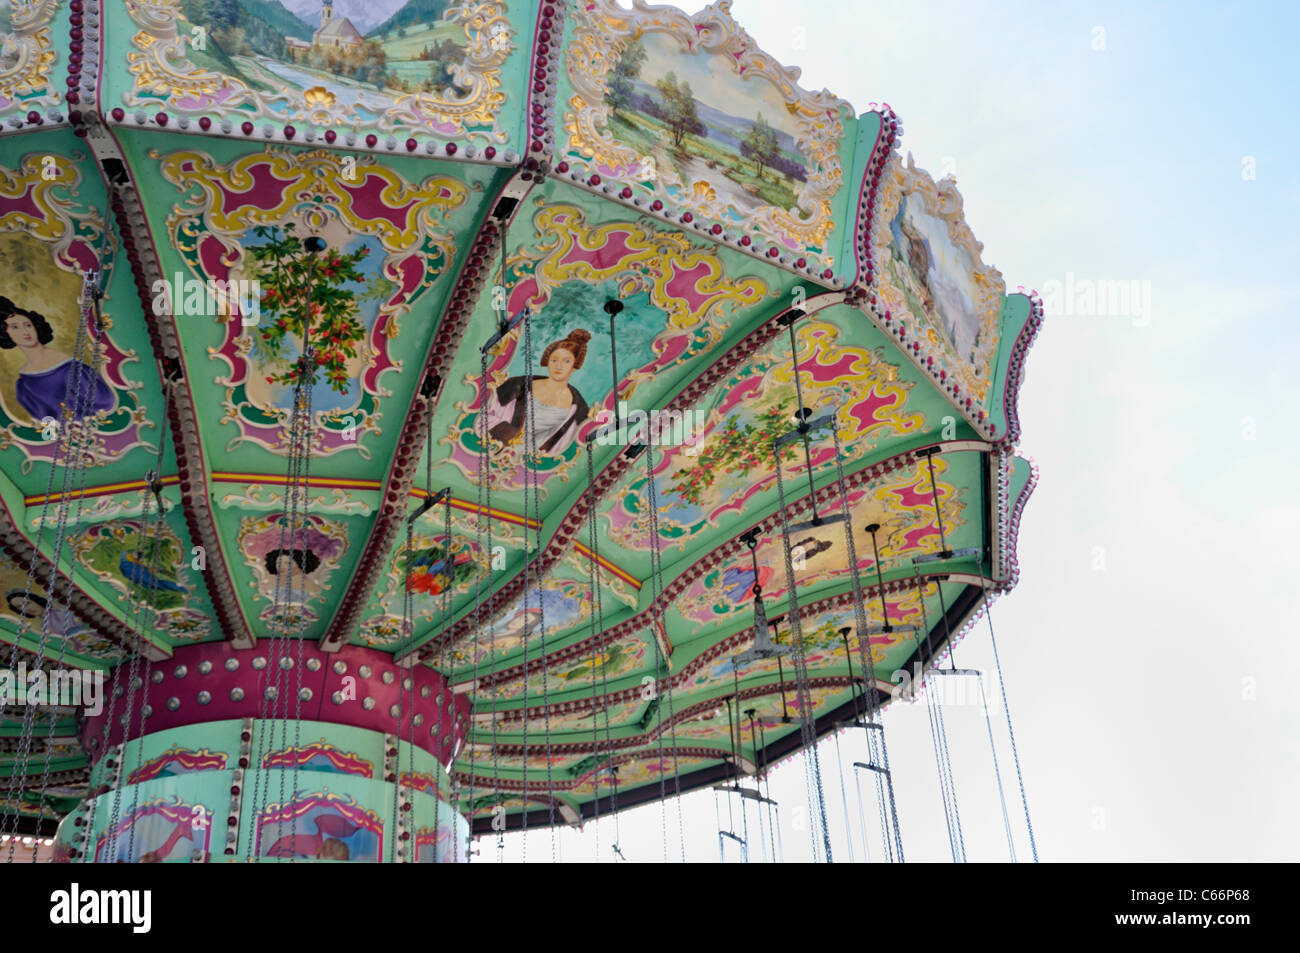 chair swing vienna plywood dining carousel stock photos and images